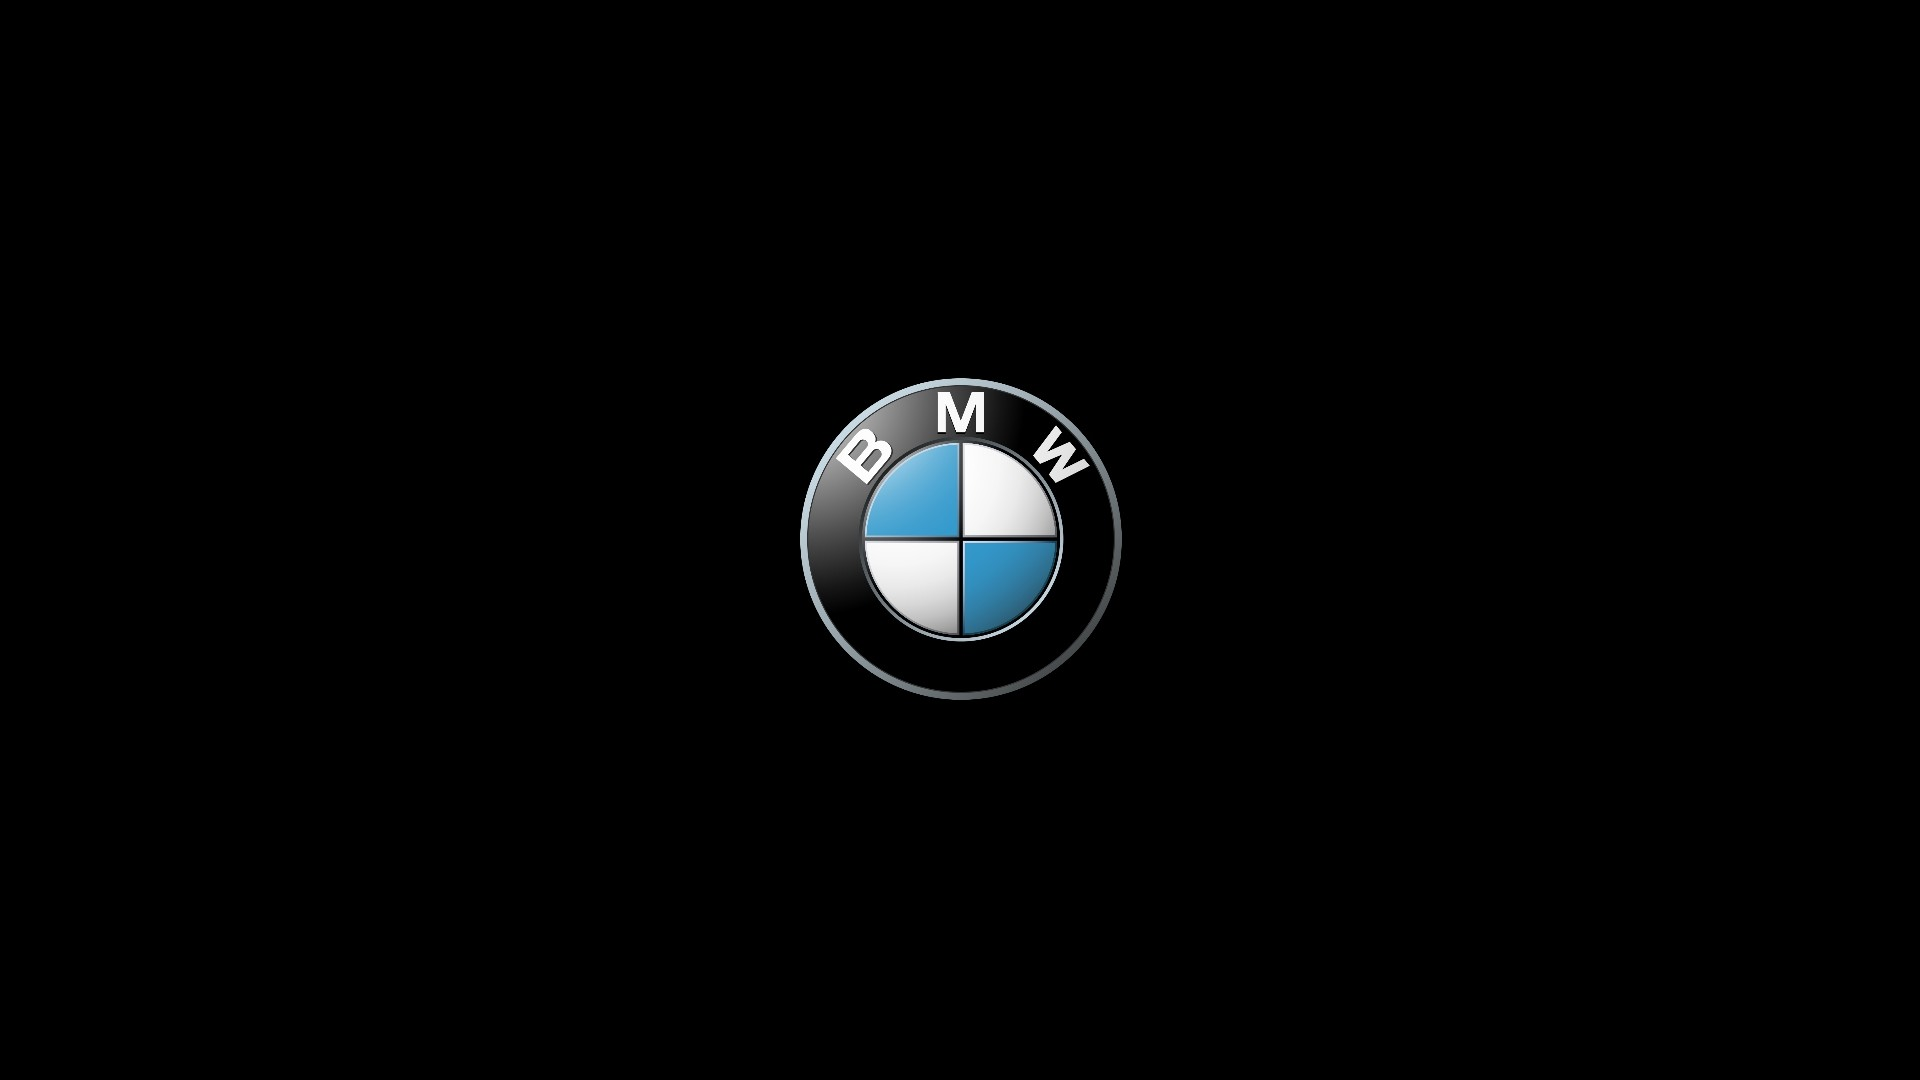 bmw logo hd wallpaper (70+ images)